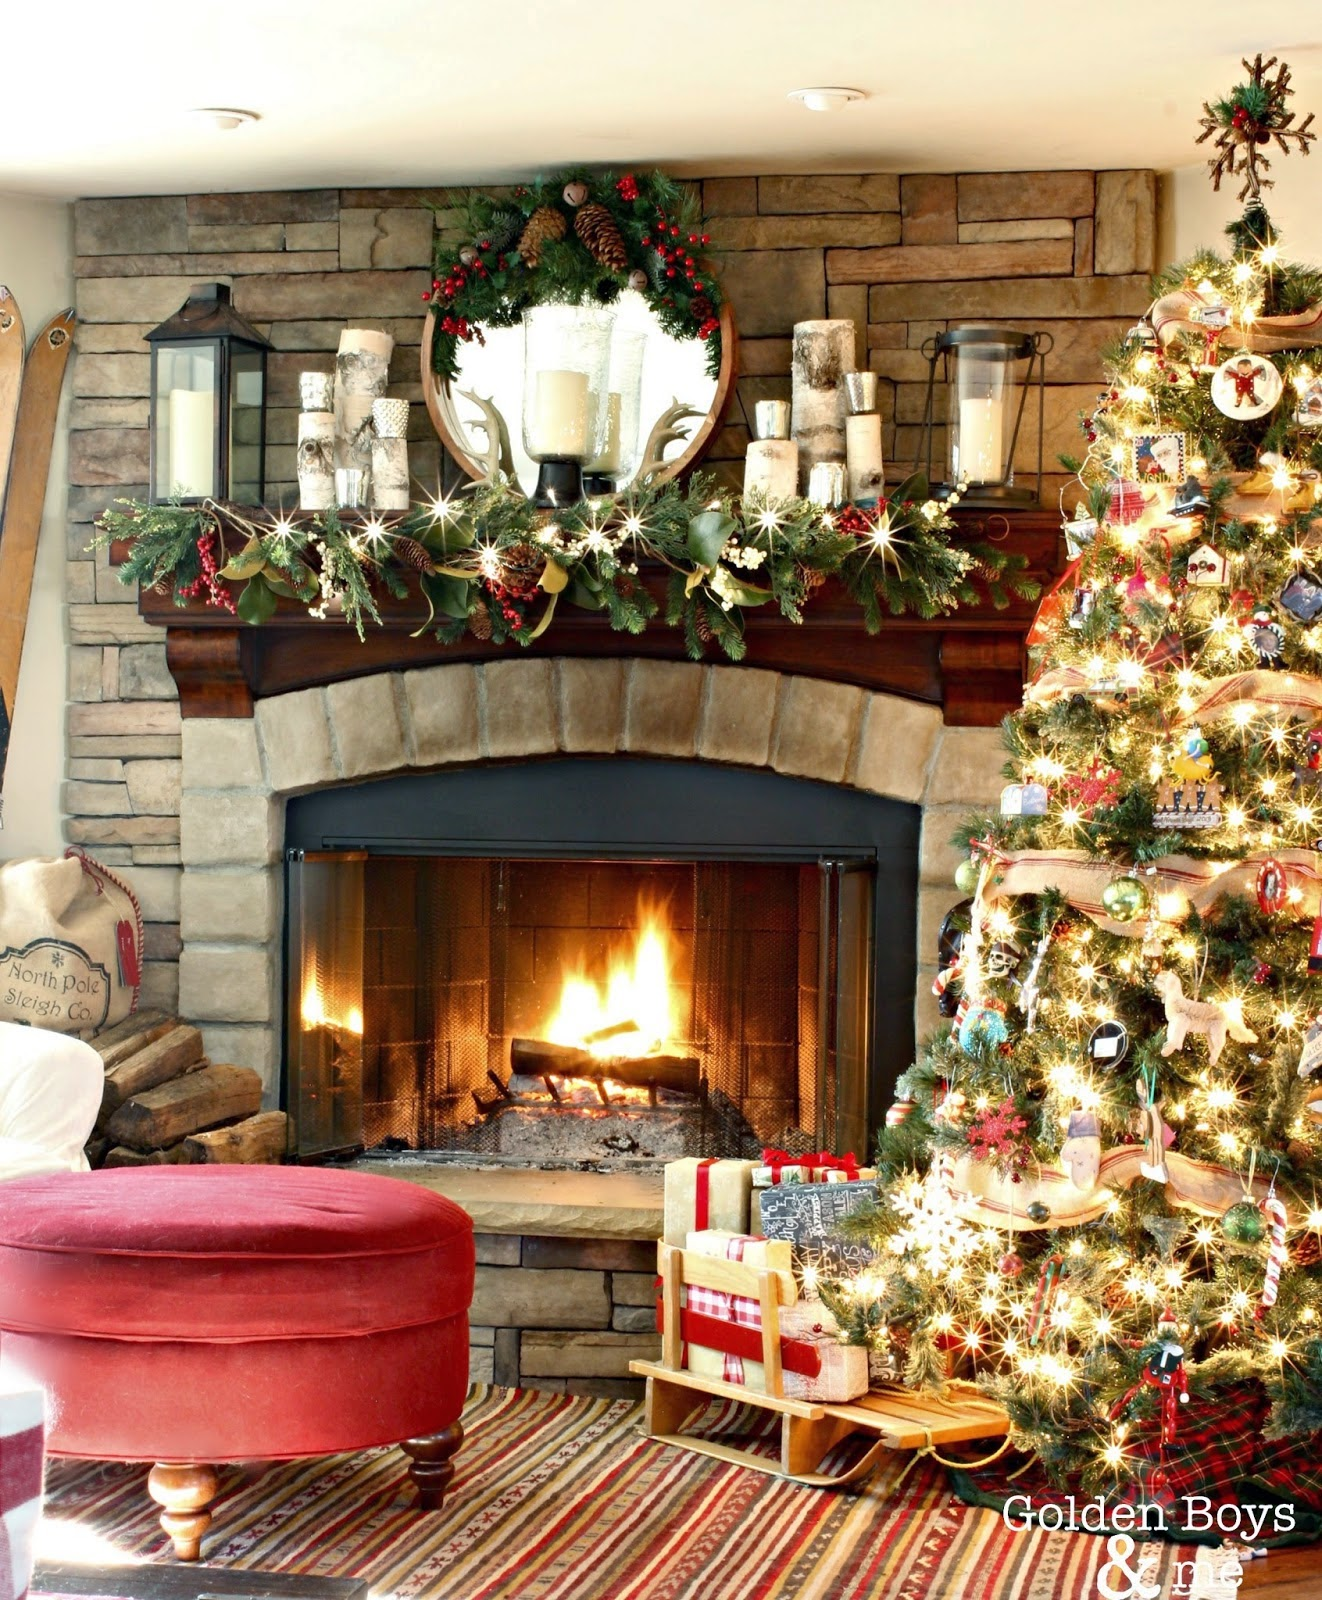 Homes Decorated For Christmas On The Inside: Golden Boys And Me: Holiday Home Tour 2014